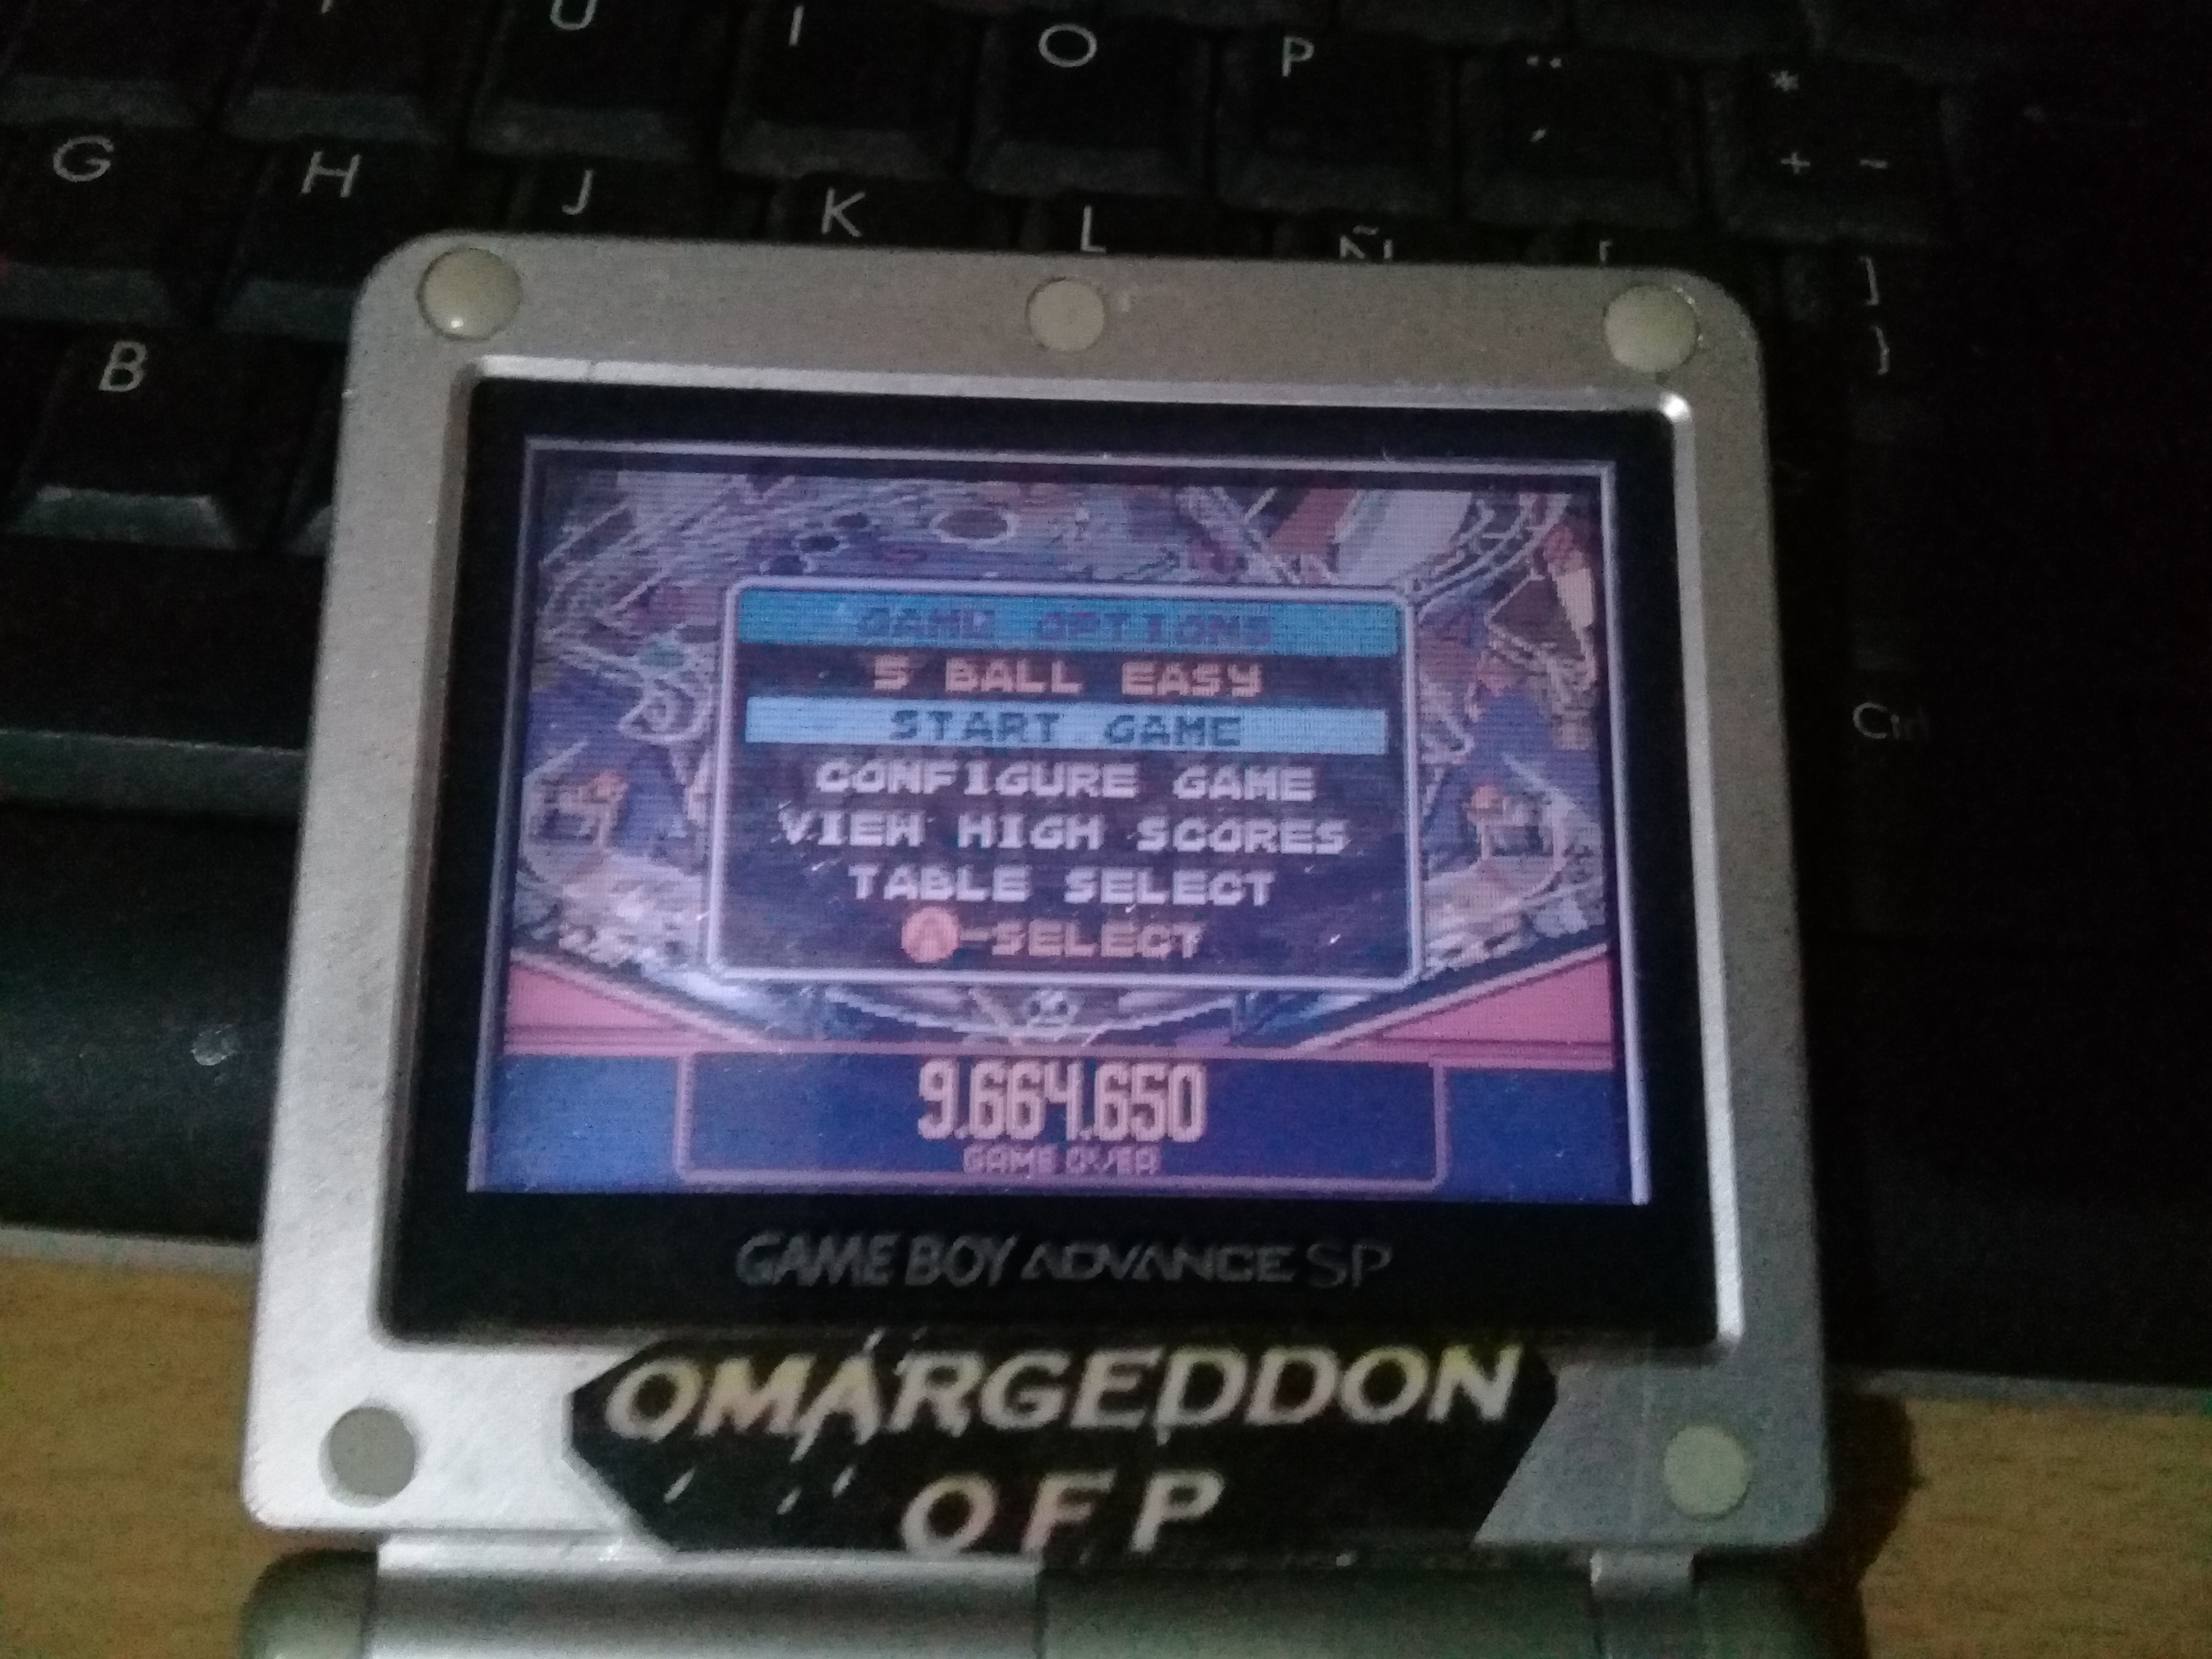 omargeddon: Pinball Advance: Dare Devil [5 Balls] [Easy] (GBA) 9,664,650 points on 2019-09-21 00:57:12